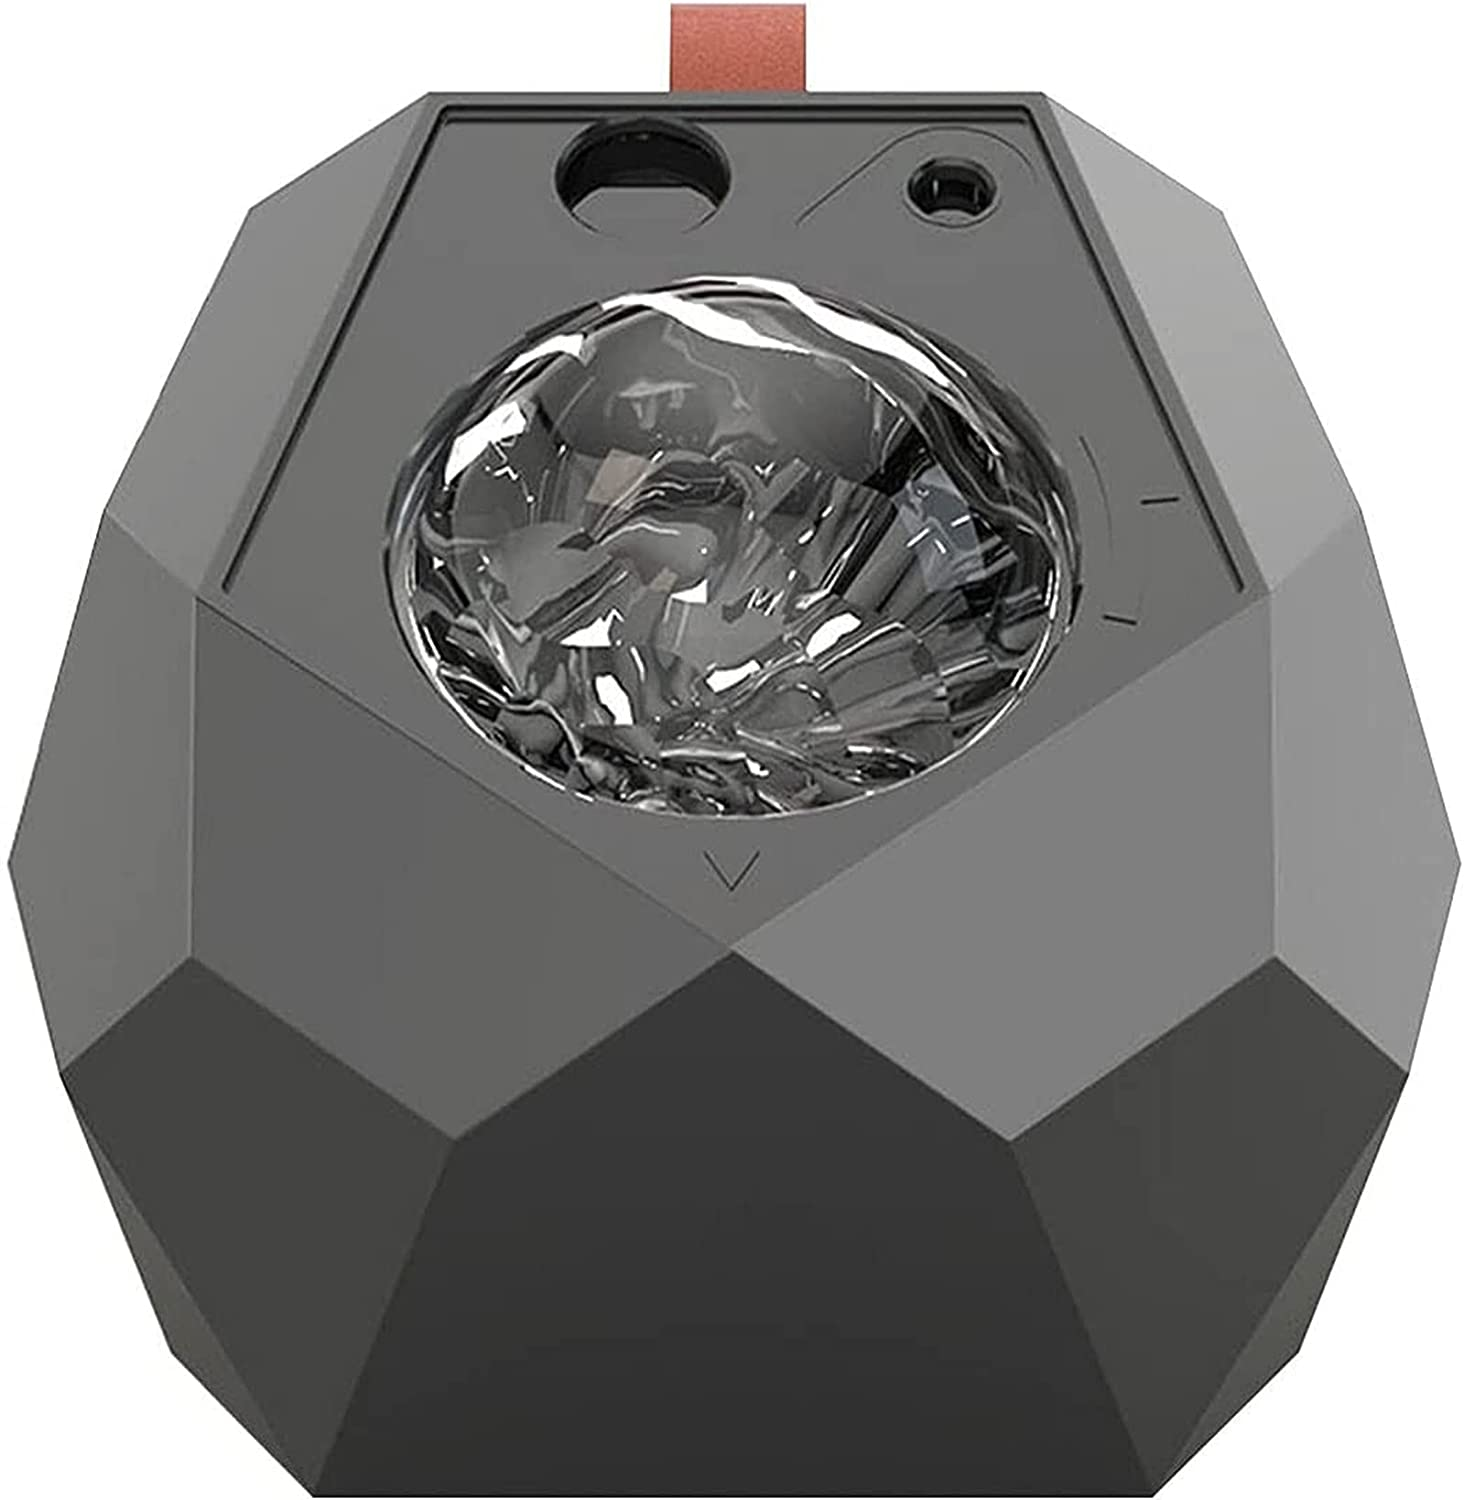 Lovedfgh Star Manufacturer regenerated product Projector LED Lamp Today's only Starry Sky Rotating